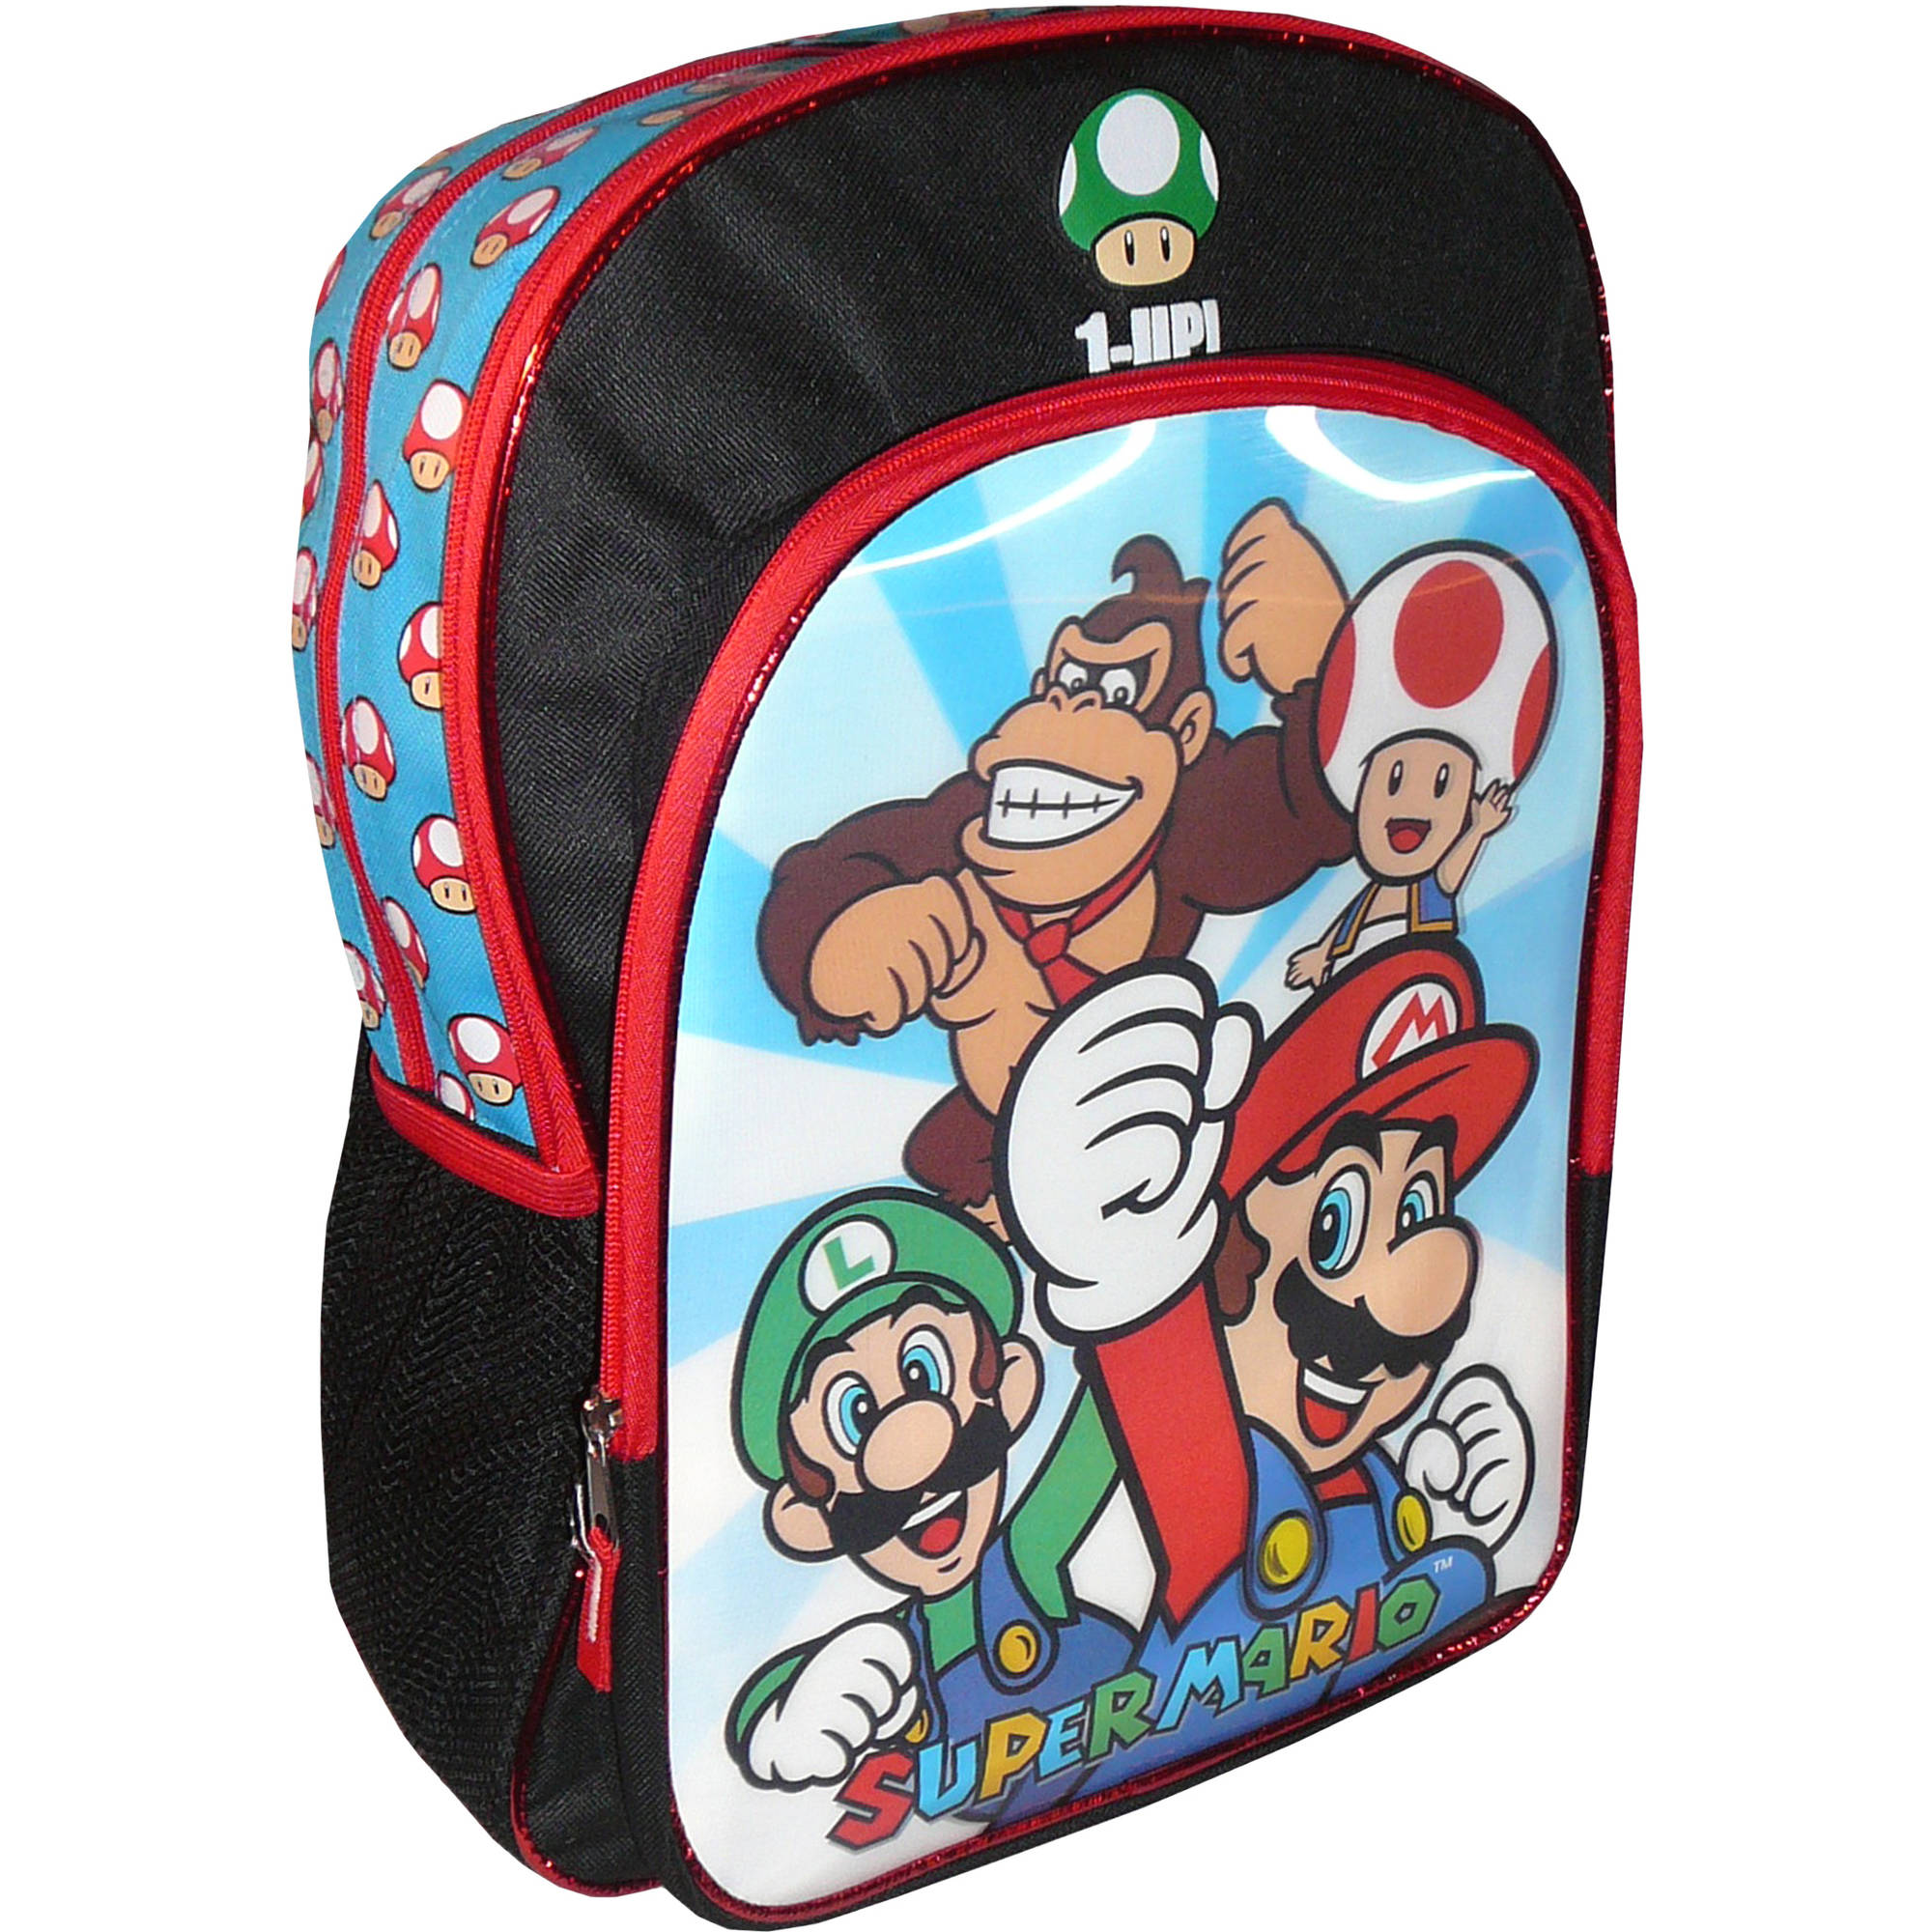 "Super Mario 16"" Backpack with Lenticular Panel"